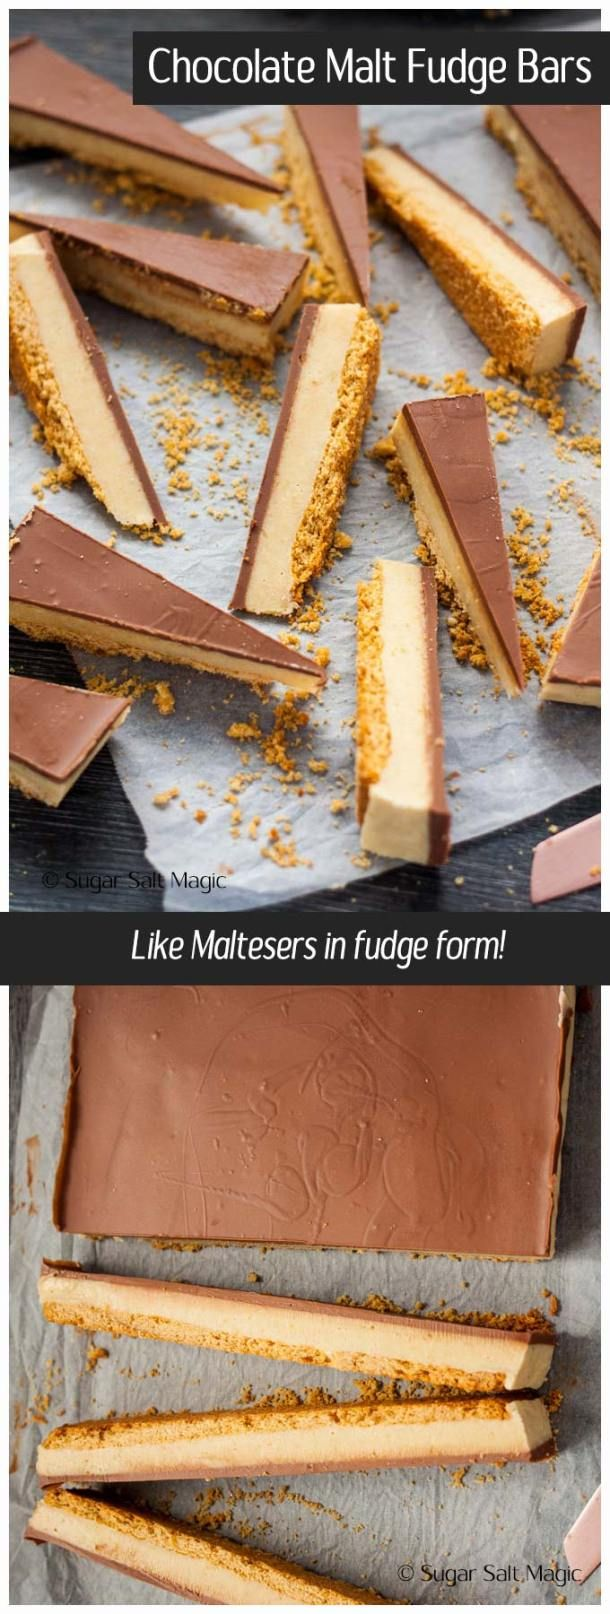 Chocolate Malt Fudge Bars. A creamy malted milk fudge filling on a biscuit base and covered in chocolate. This is like Matesers in fudge form. #fudge #maltesers